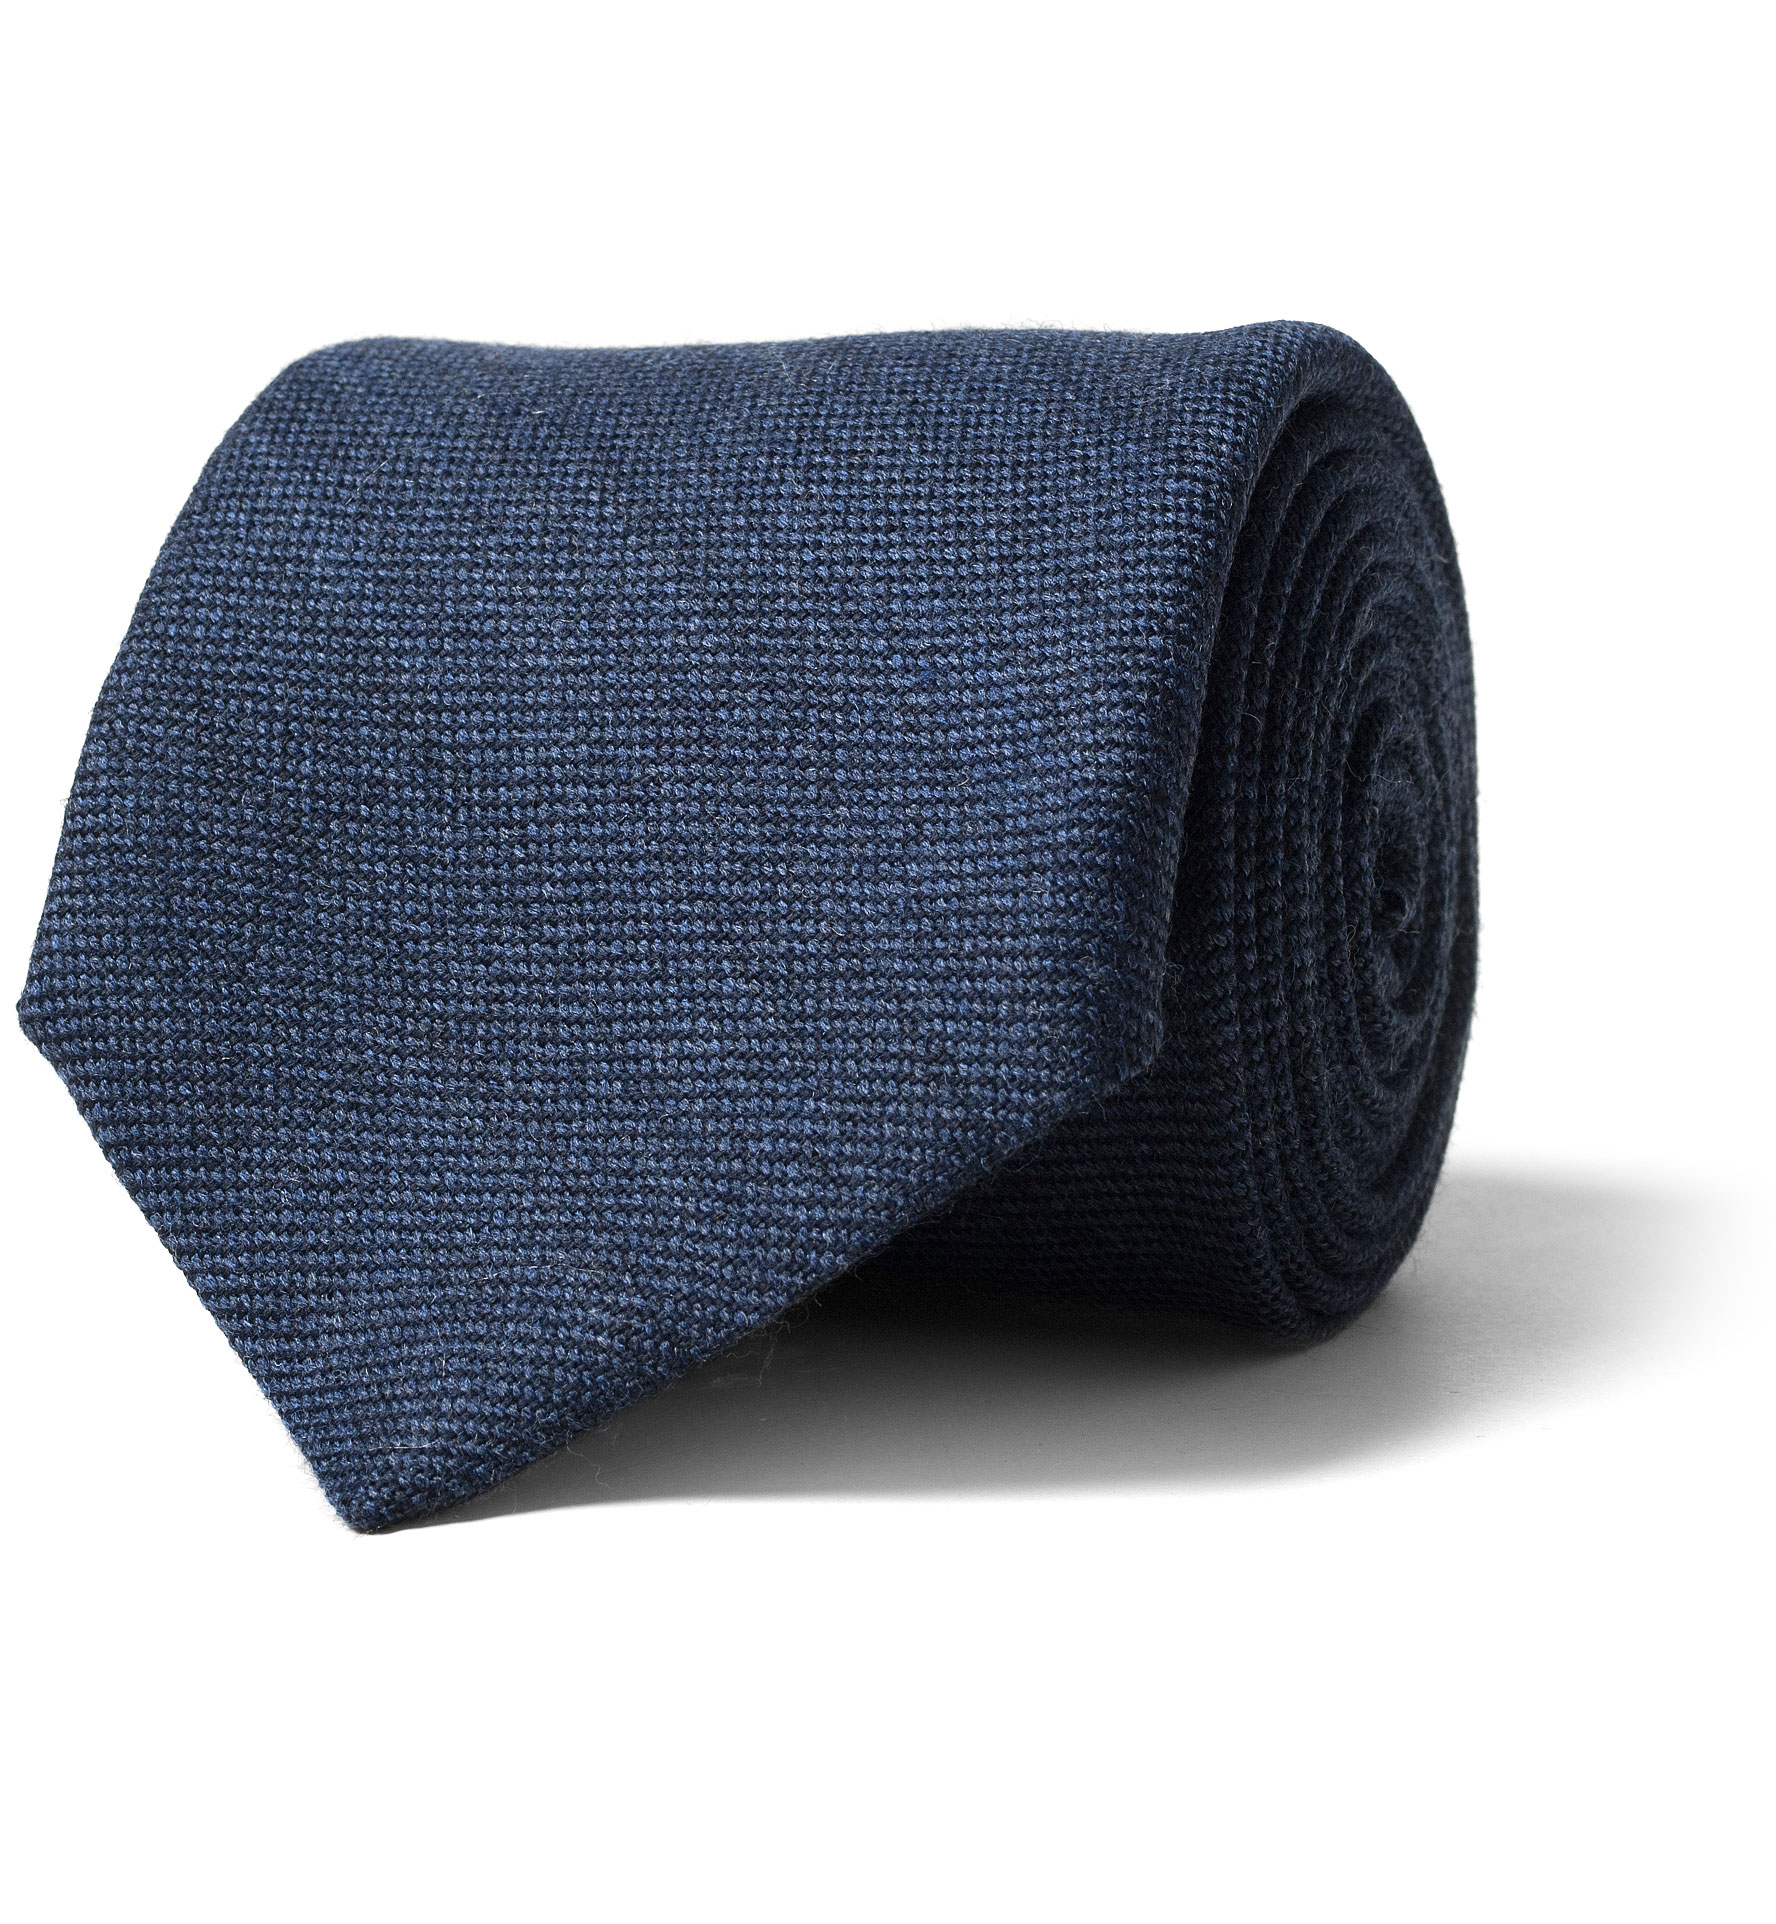 Zoom Image of Ocean Blue Wool Flannel Tie